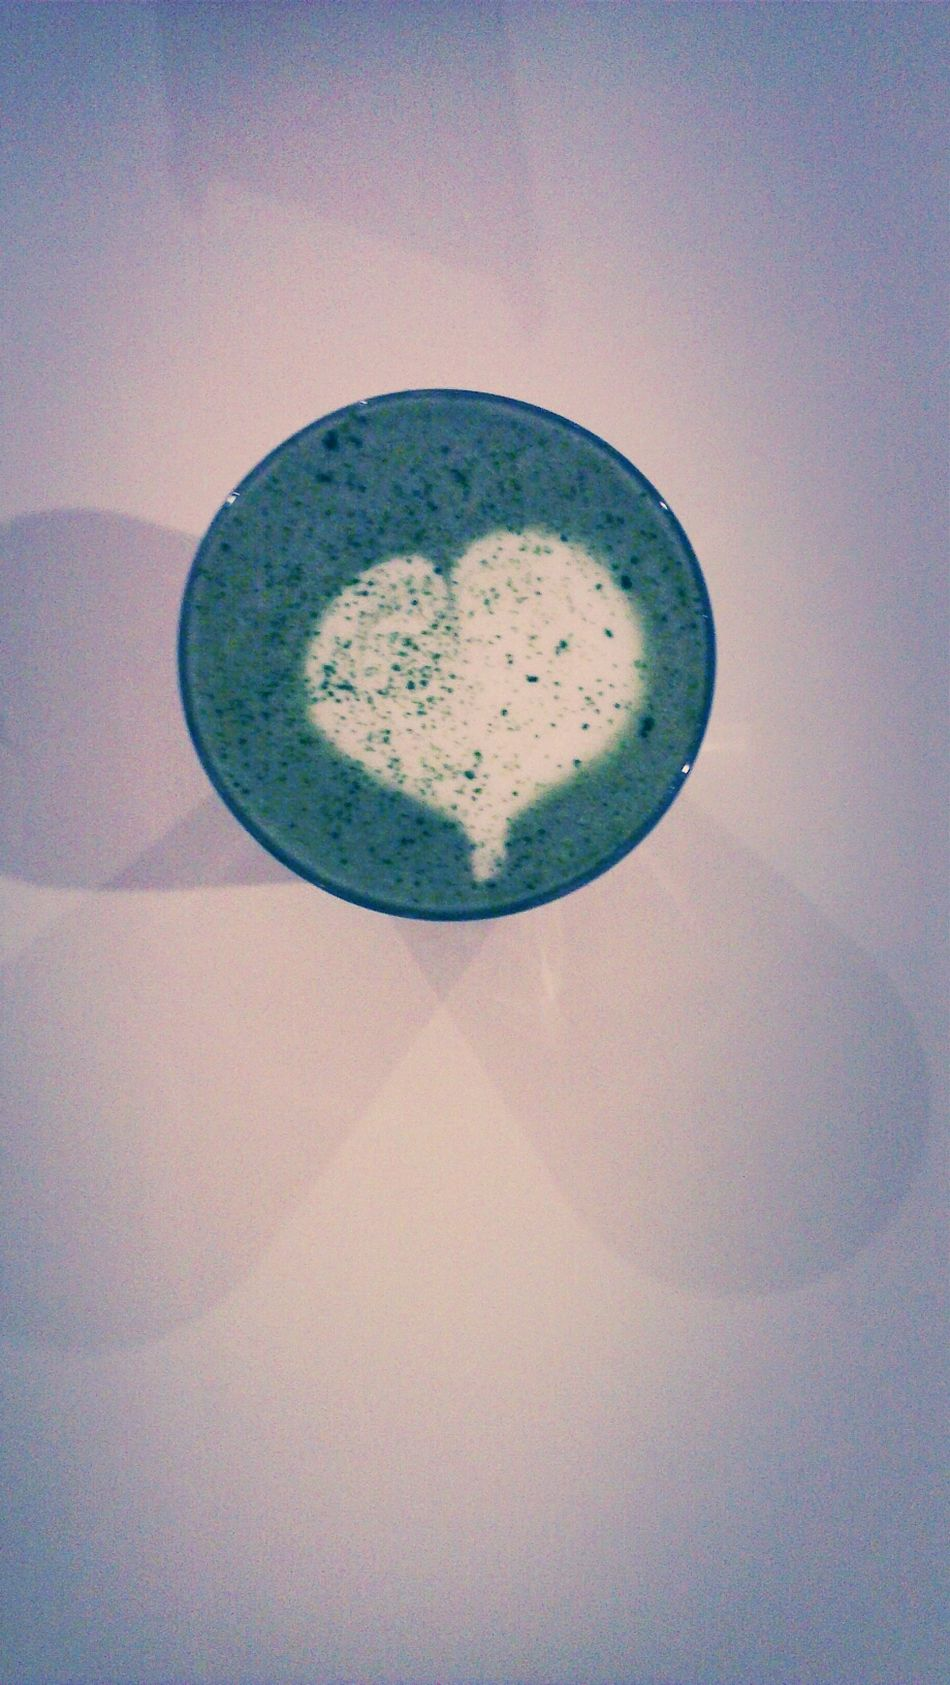 Green tea latte.